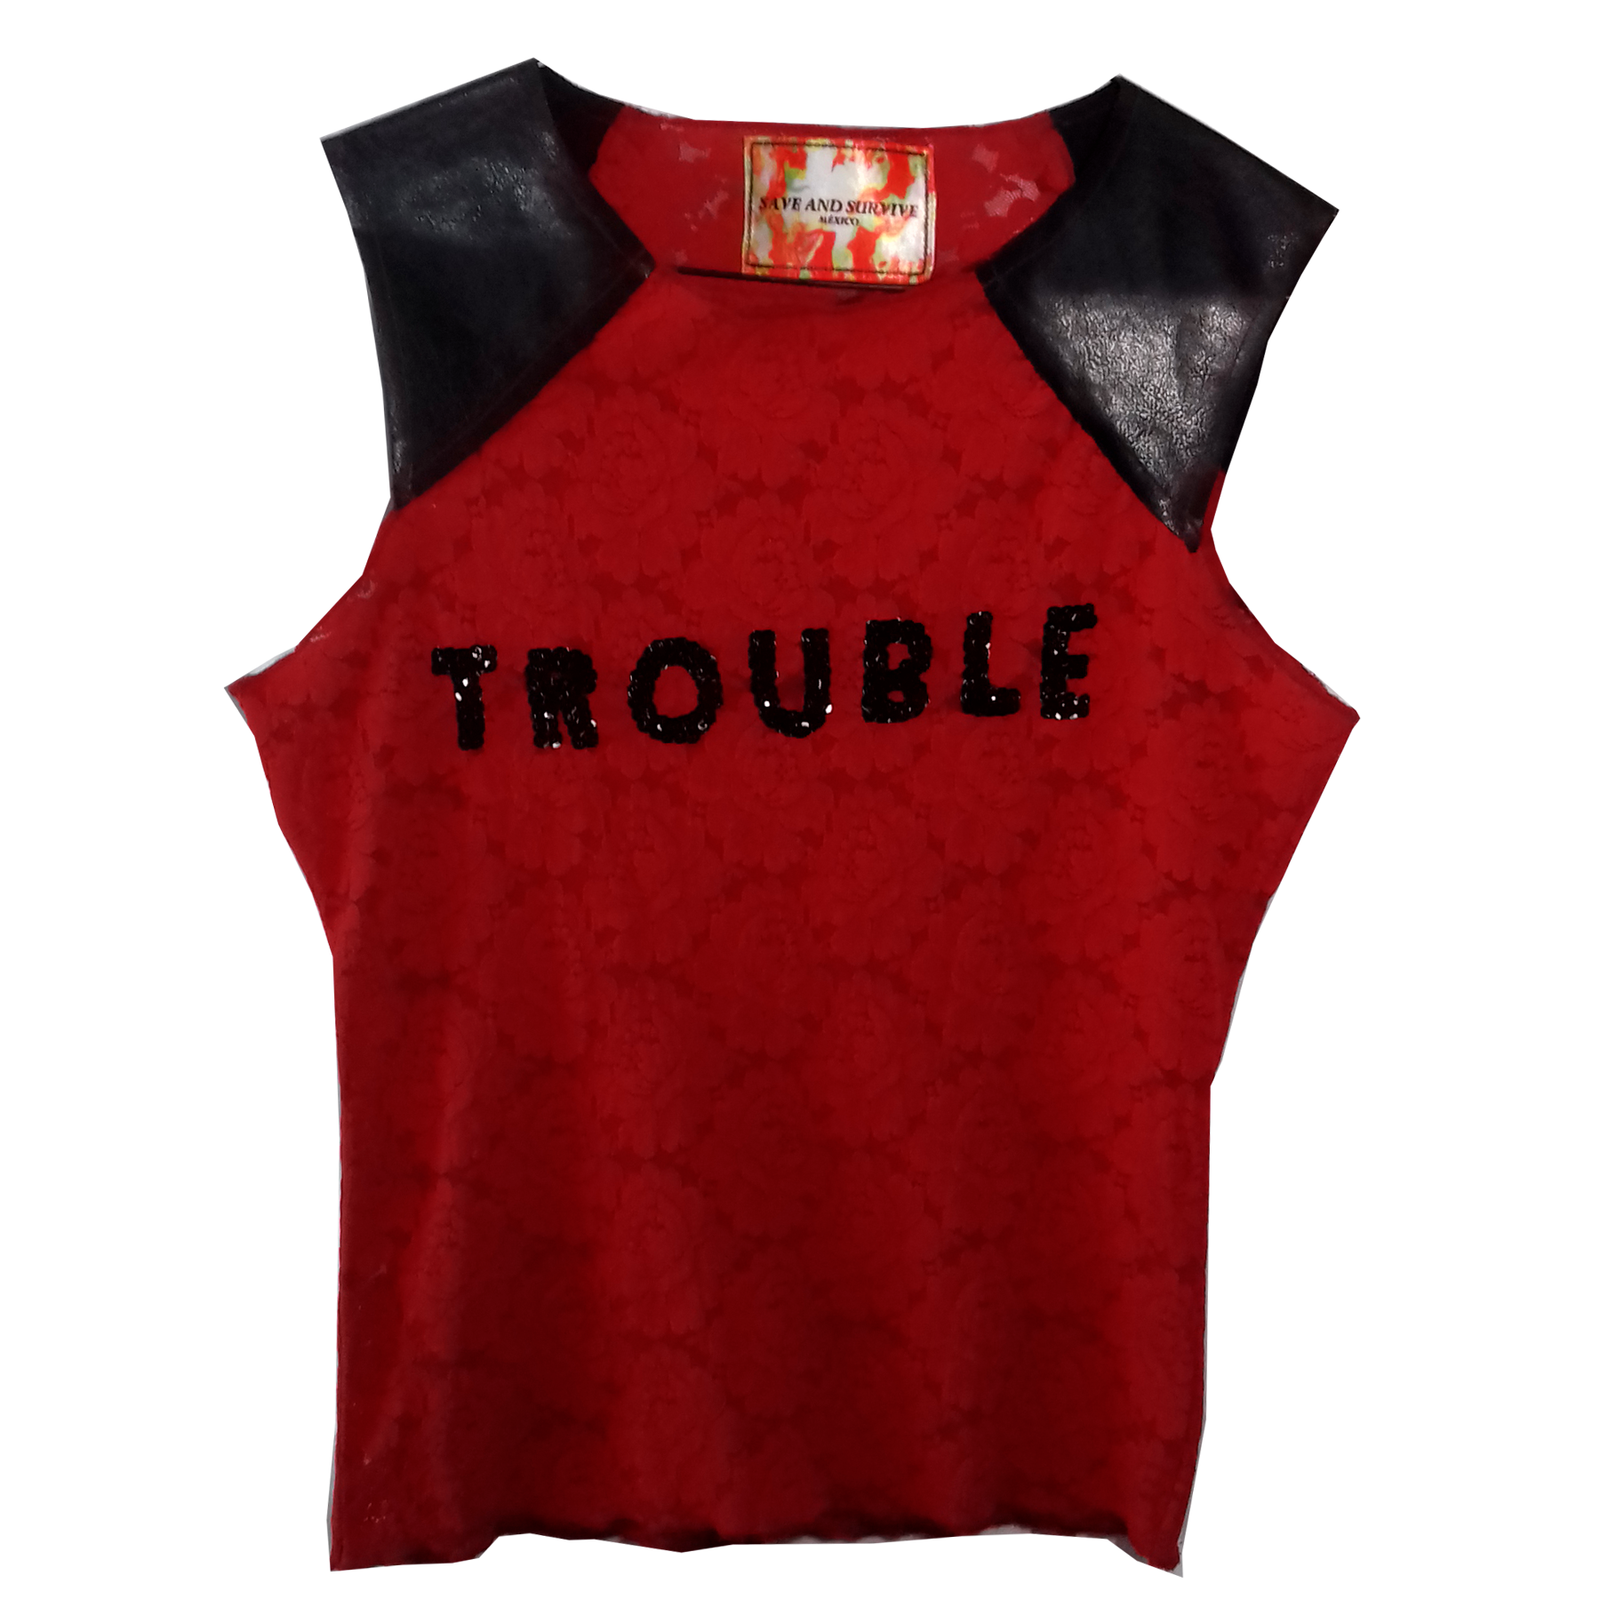 Trouble maker top - Hipnosis